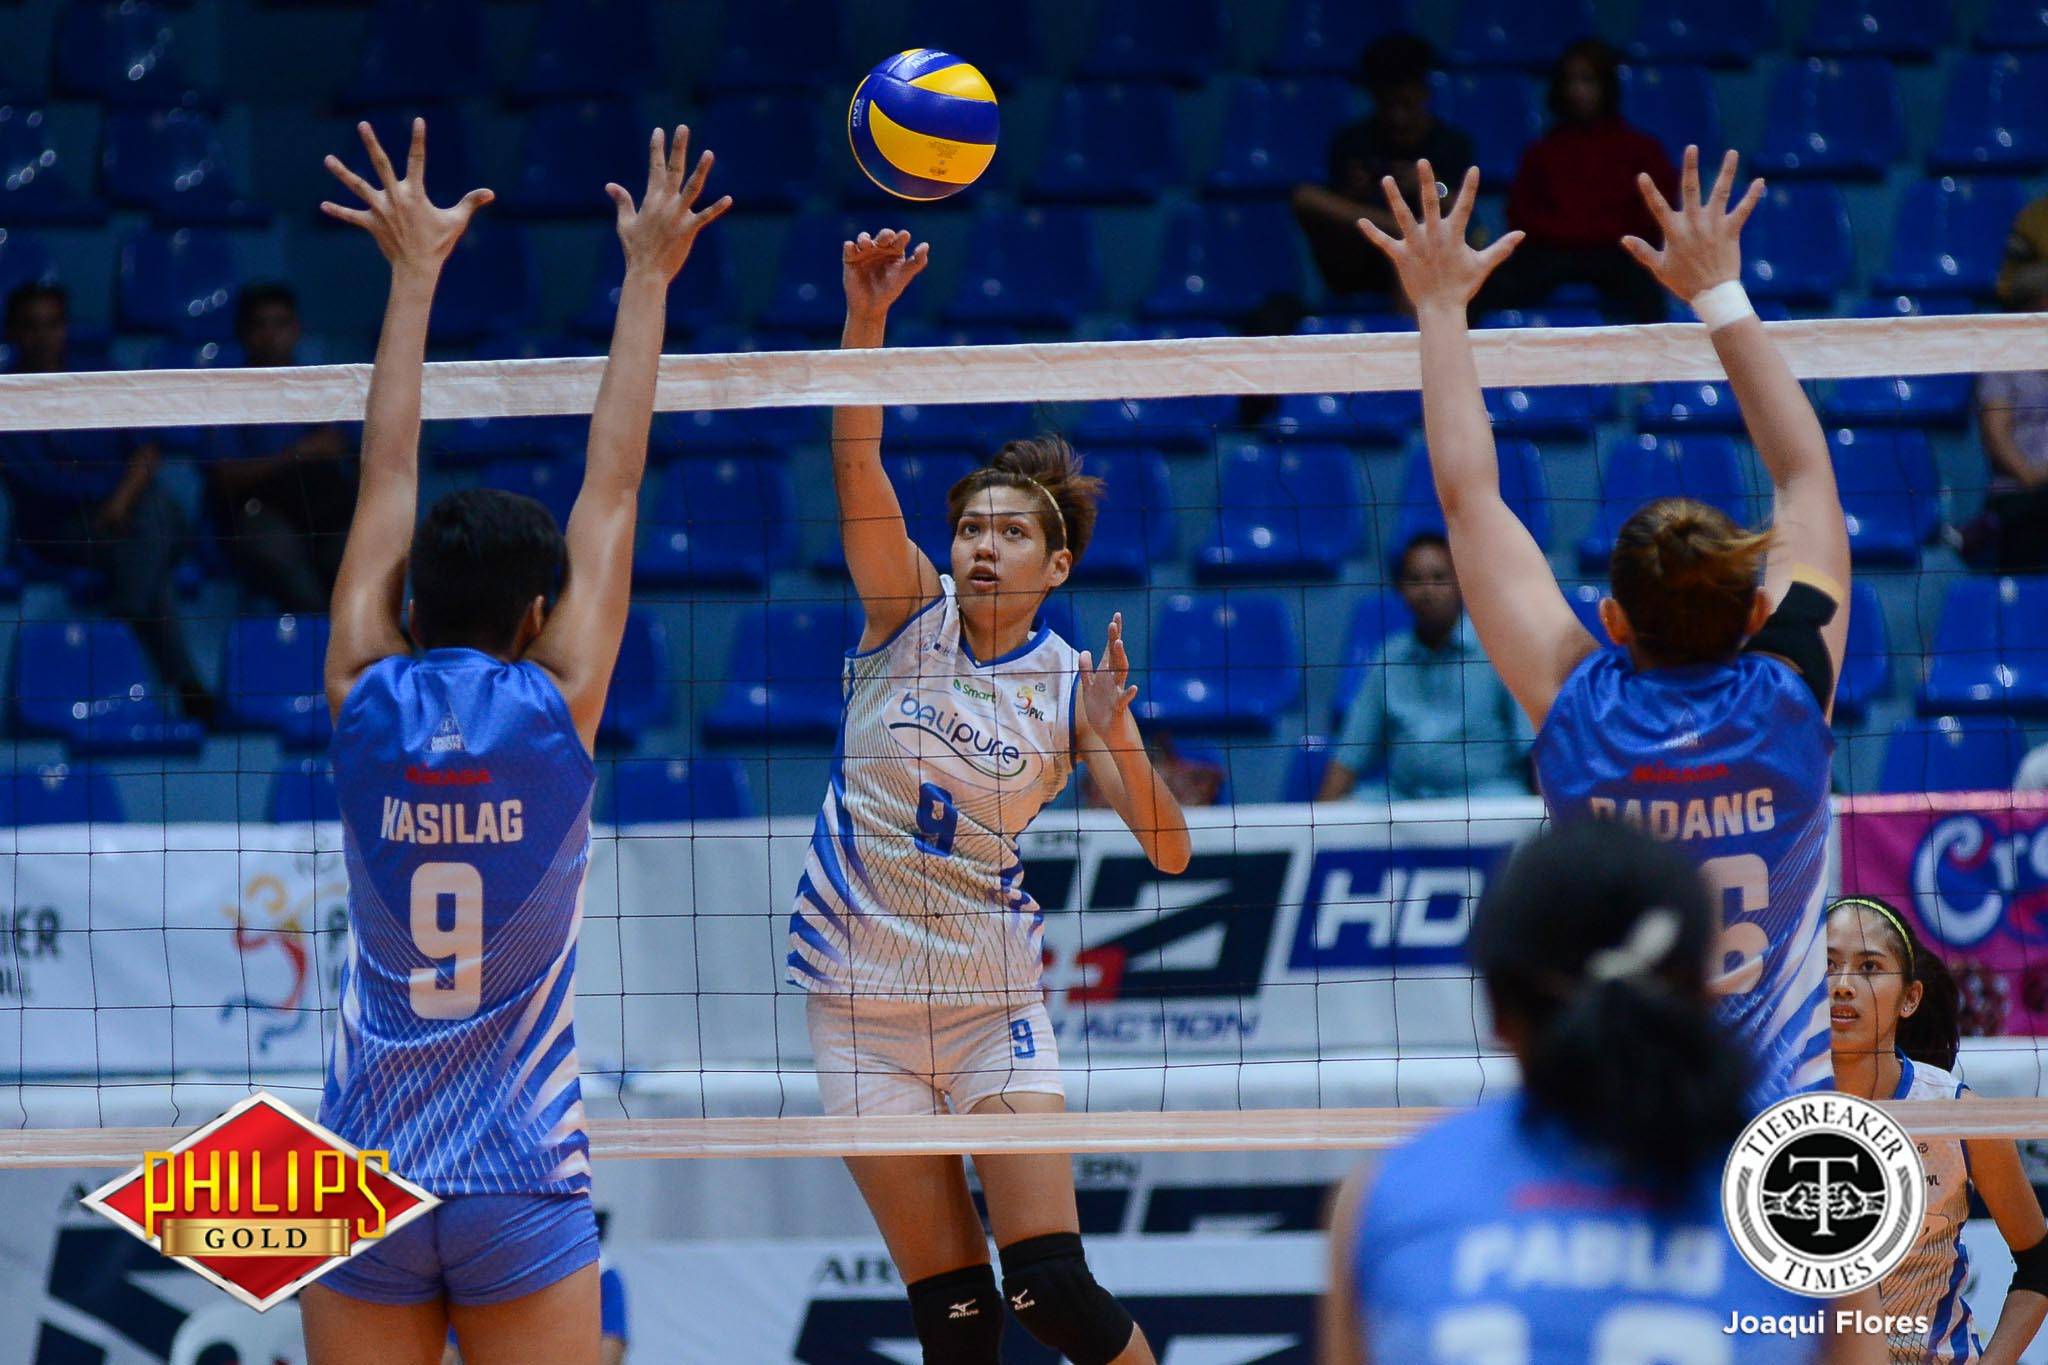 Philippine Sports News - Tiebreaker Times Bali Pure draws first blood in dominant Game One showing News PVL Volleyball  Roger Gorayeb Rico De Guzman Pocari Sweat Lady Warriors Lizlee Ann Gata-Pantone Jerrili Malabanan Grethcel Soltones Elaine Kasilag Bali Pure Purest Water Defenders Angelica Cayuna Aiko Urdas 2017 PVL Women's Open Conference 2017 PVL Season